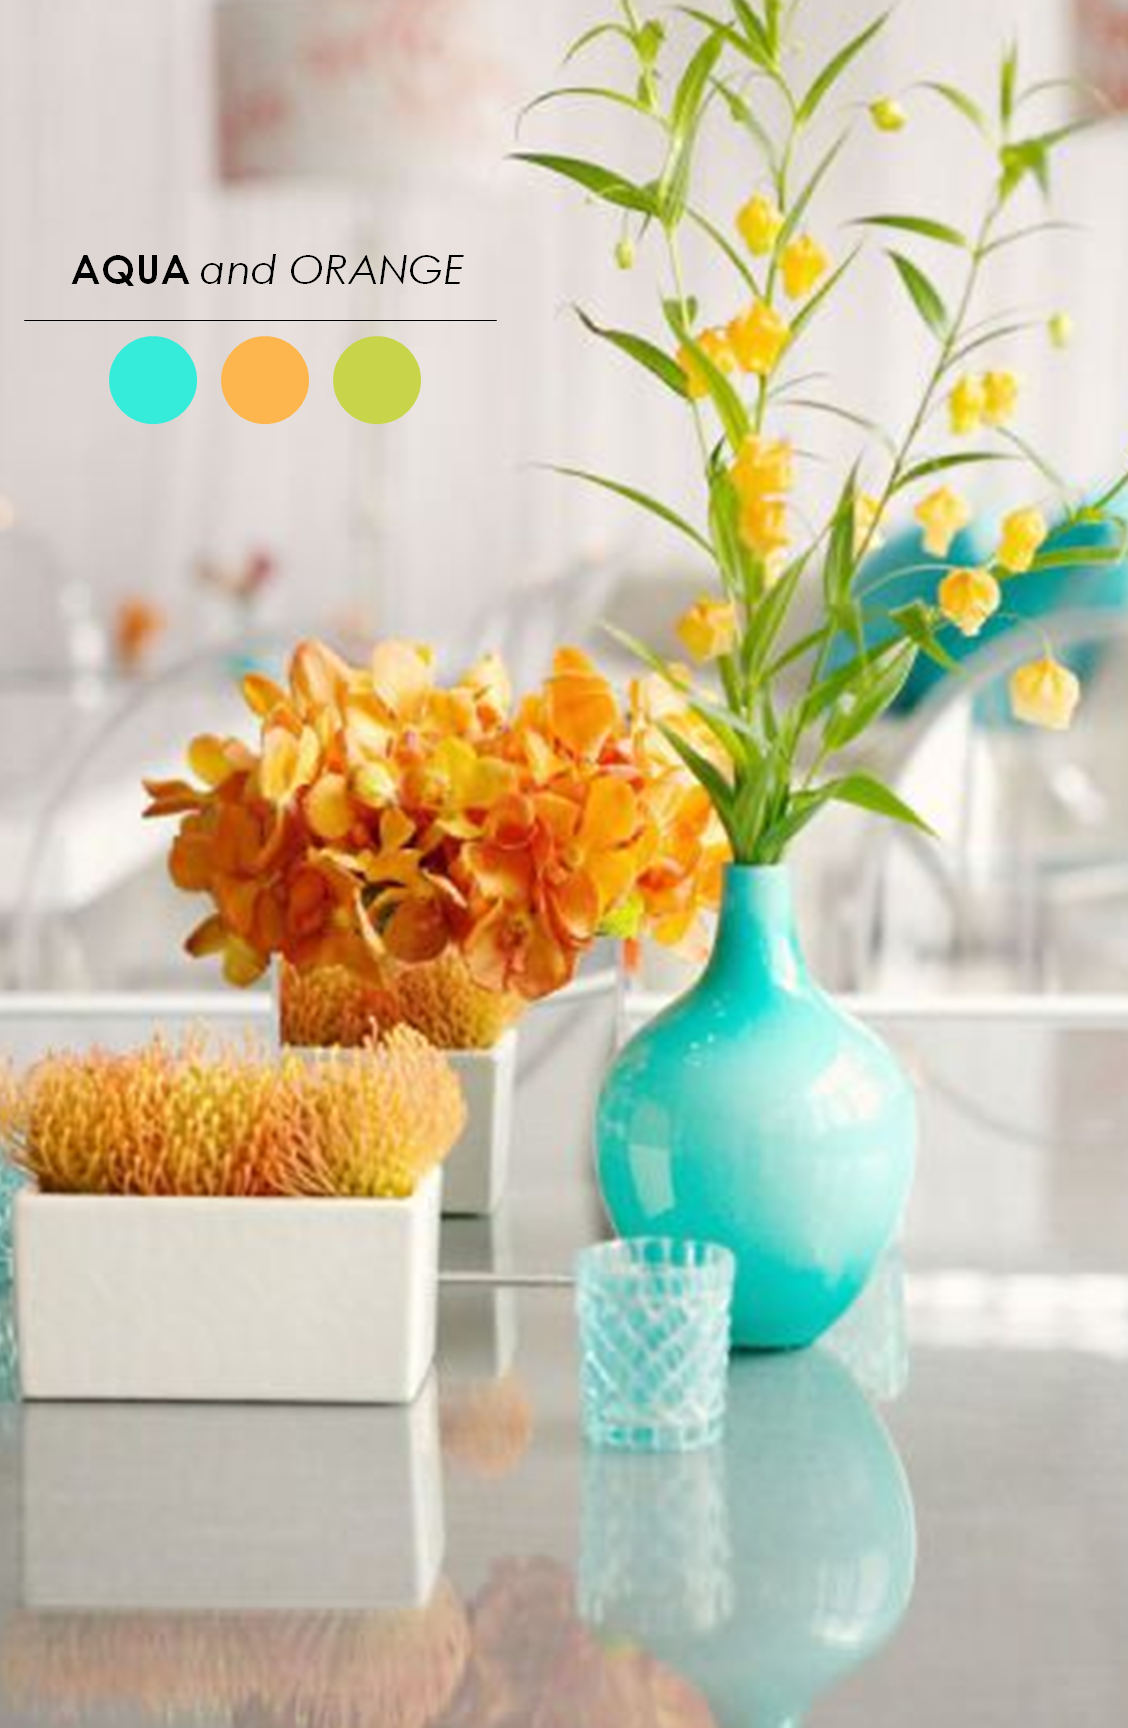 Orange And Aqua: 10 Creative Centerpieces For Weddings!